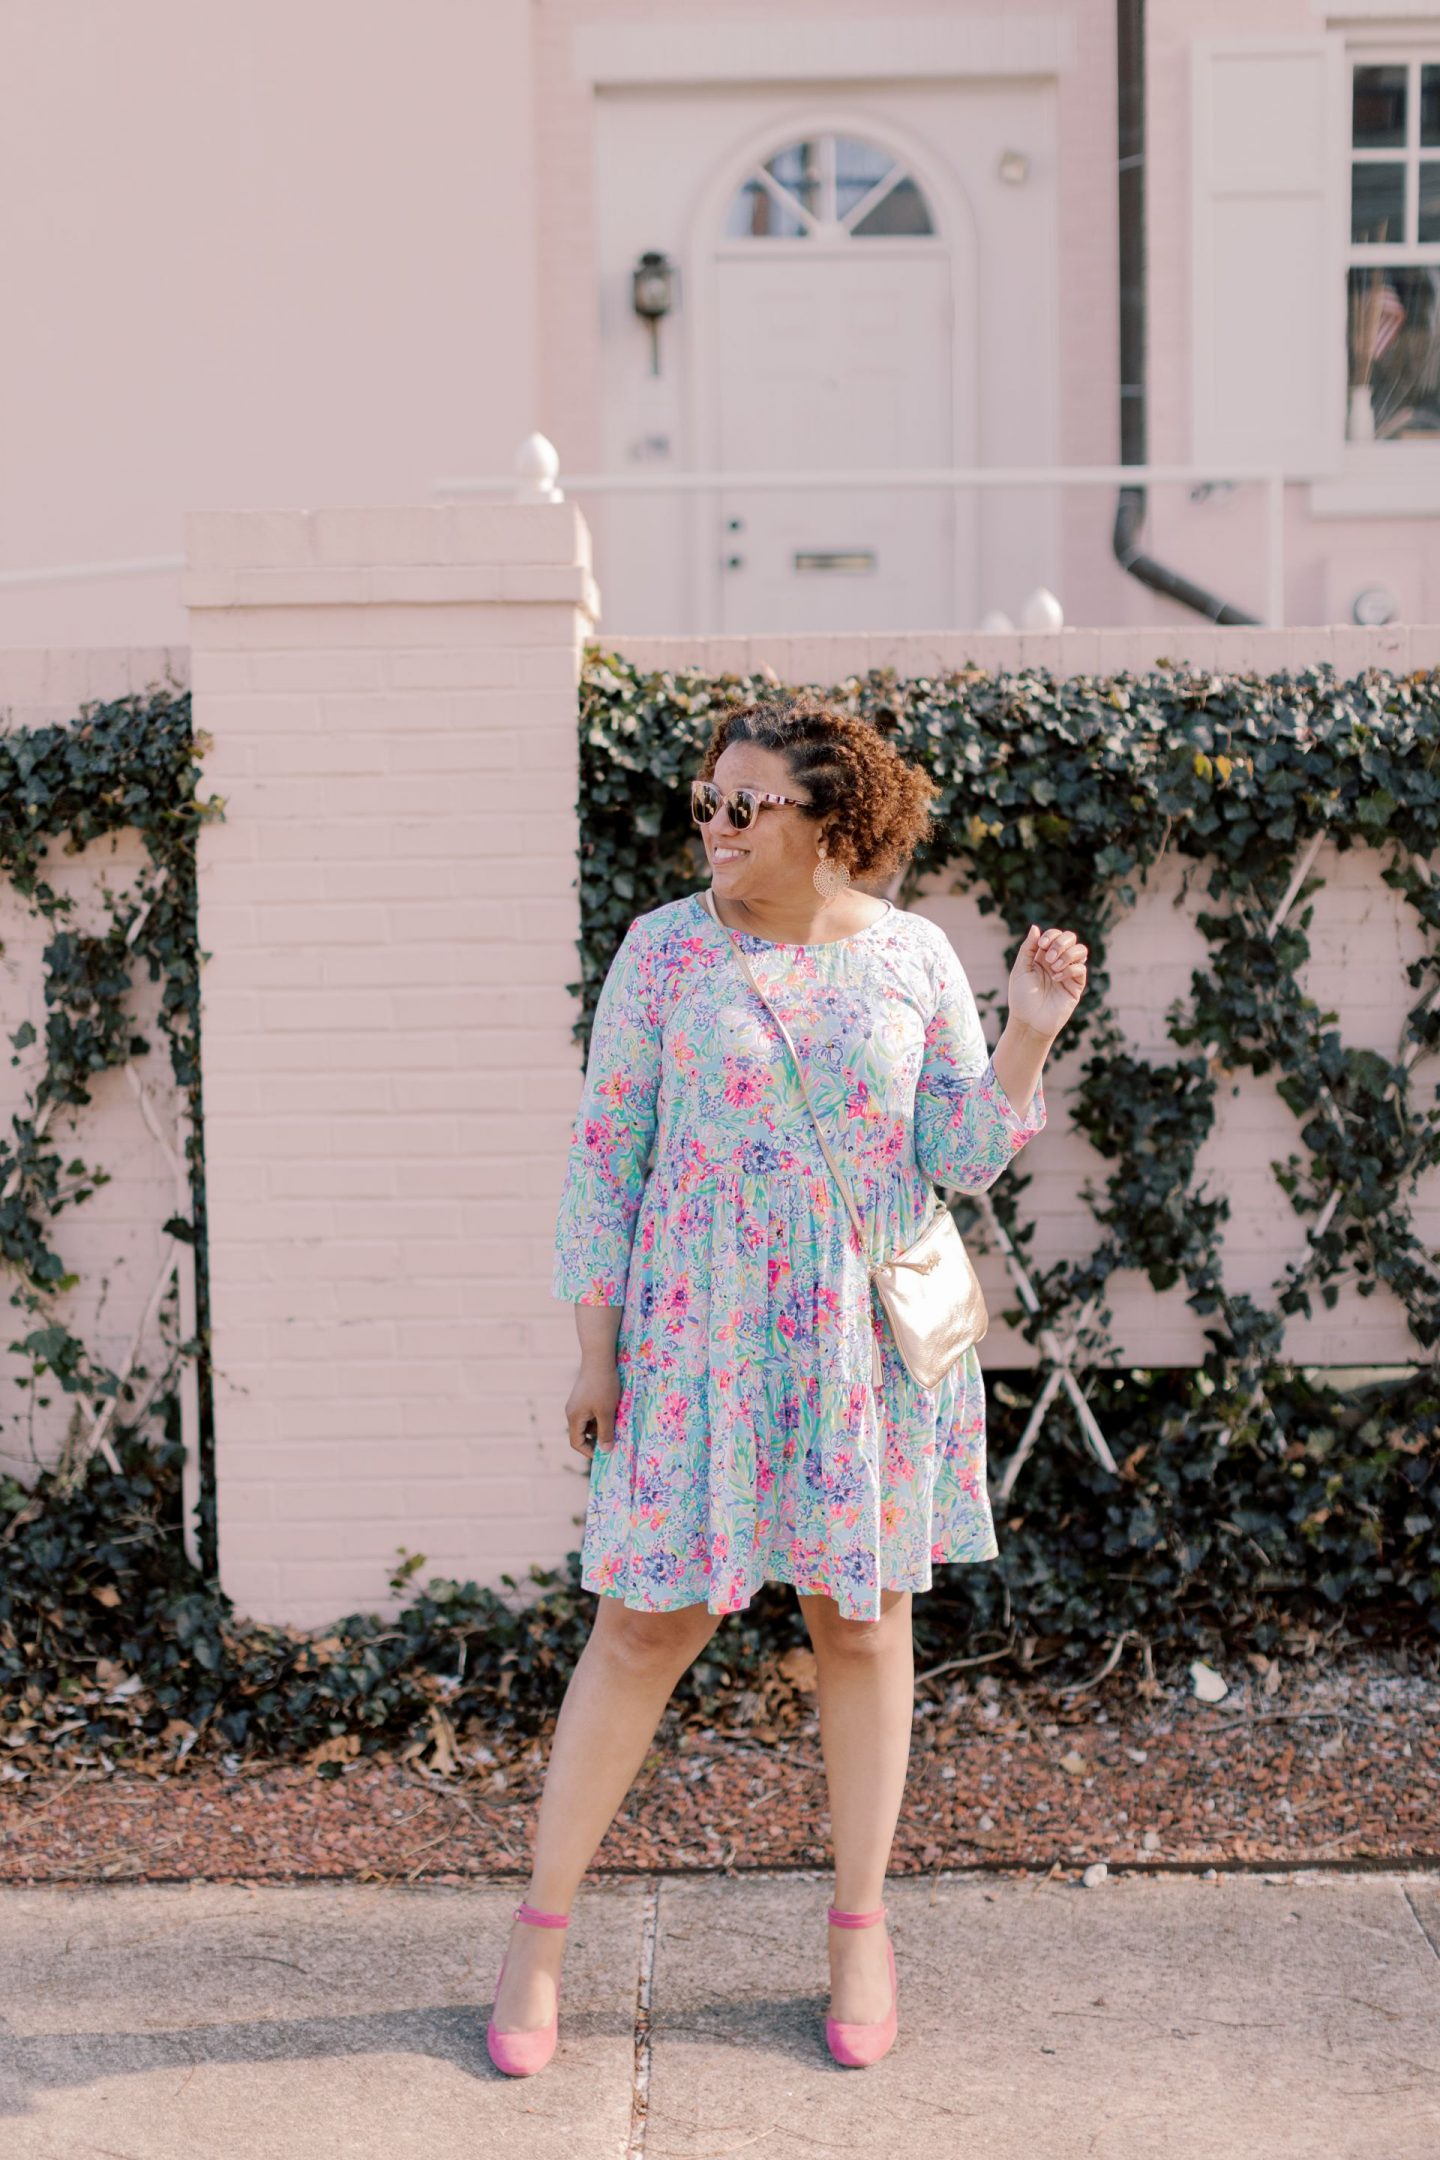 Lilly Pulitzer New Arrivals by popular Kentucky fashion blog, Really Rynetta: image of a woman wearing a Lilly Pulitzer Geanna swing dress and pink suede block heel shoes.